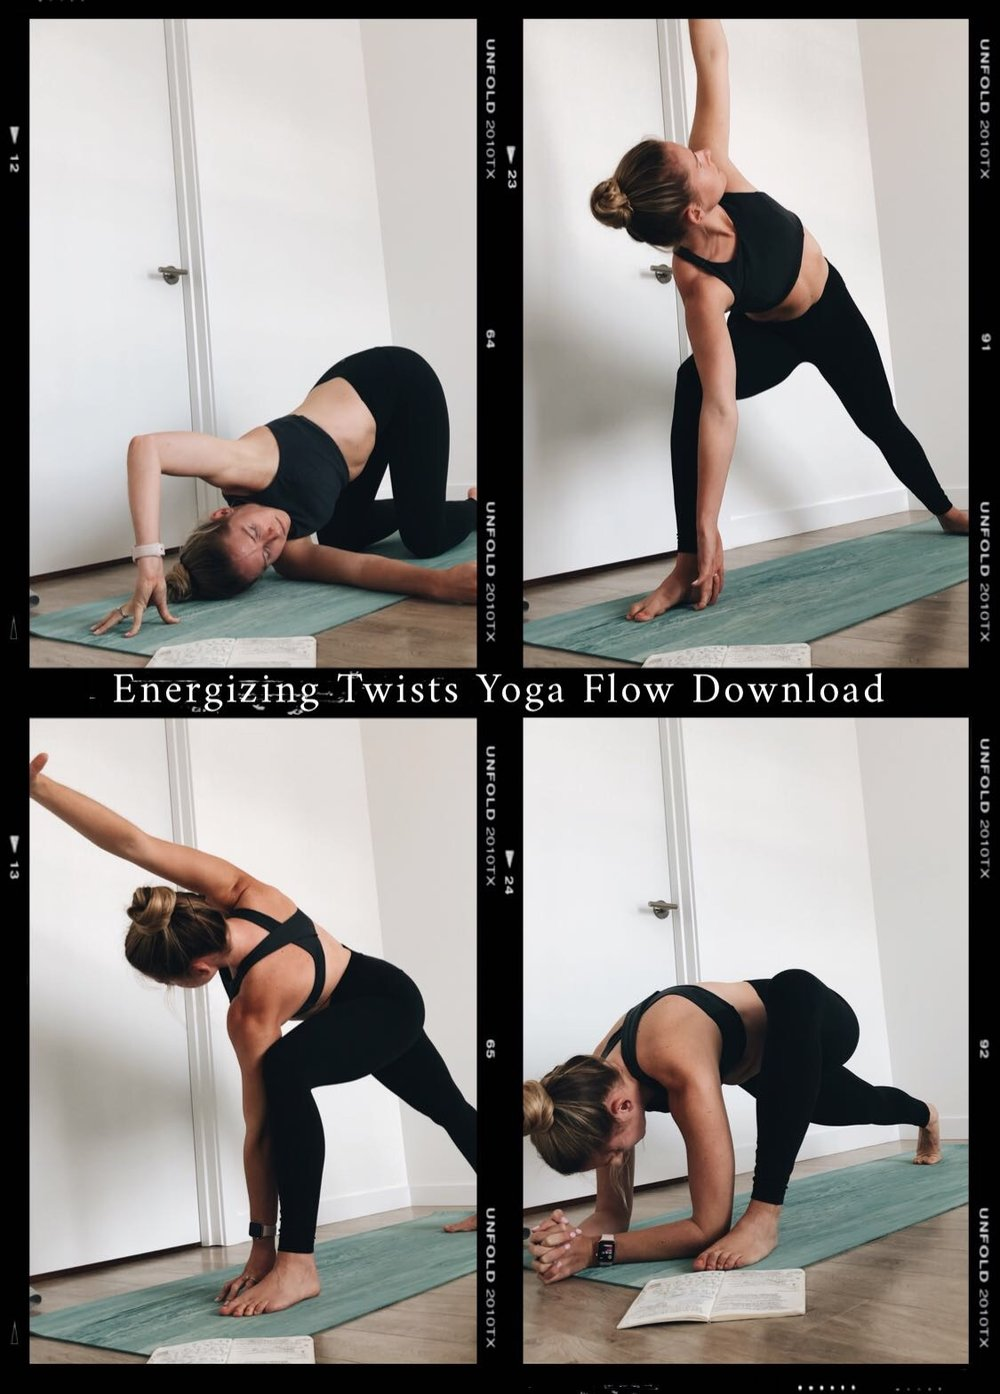 For a free downloadable PDF of the full yoga class with pose visuals and written cues to help you in your independent practice fill out the form below!